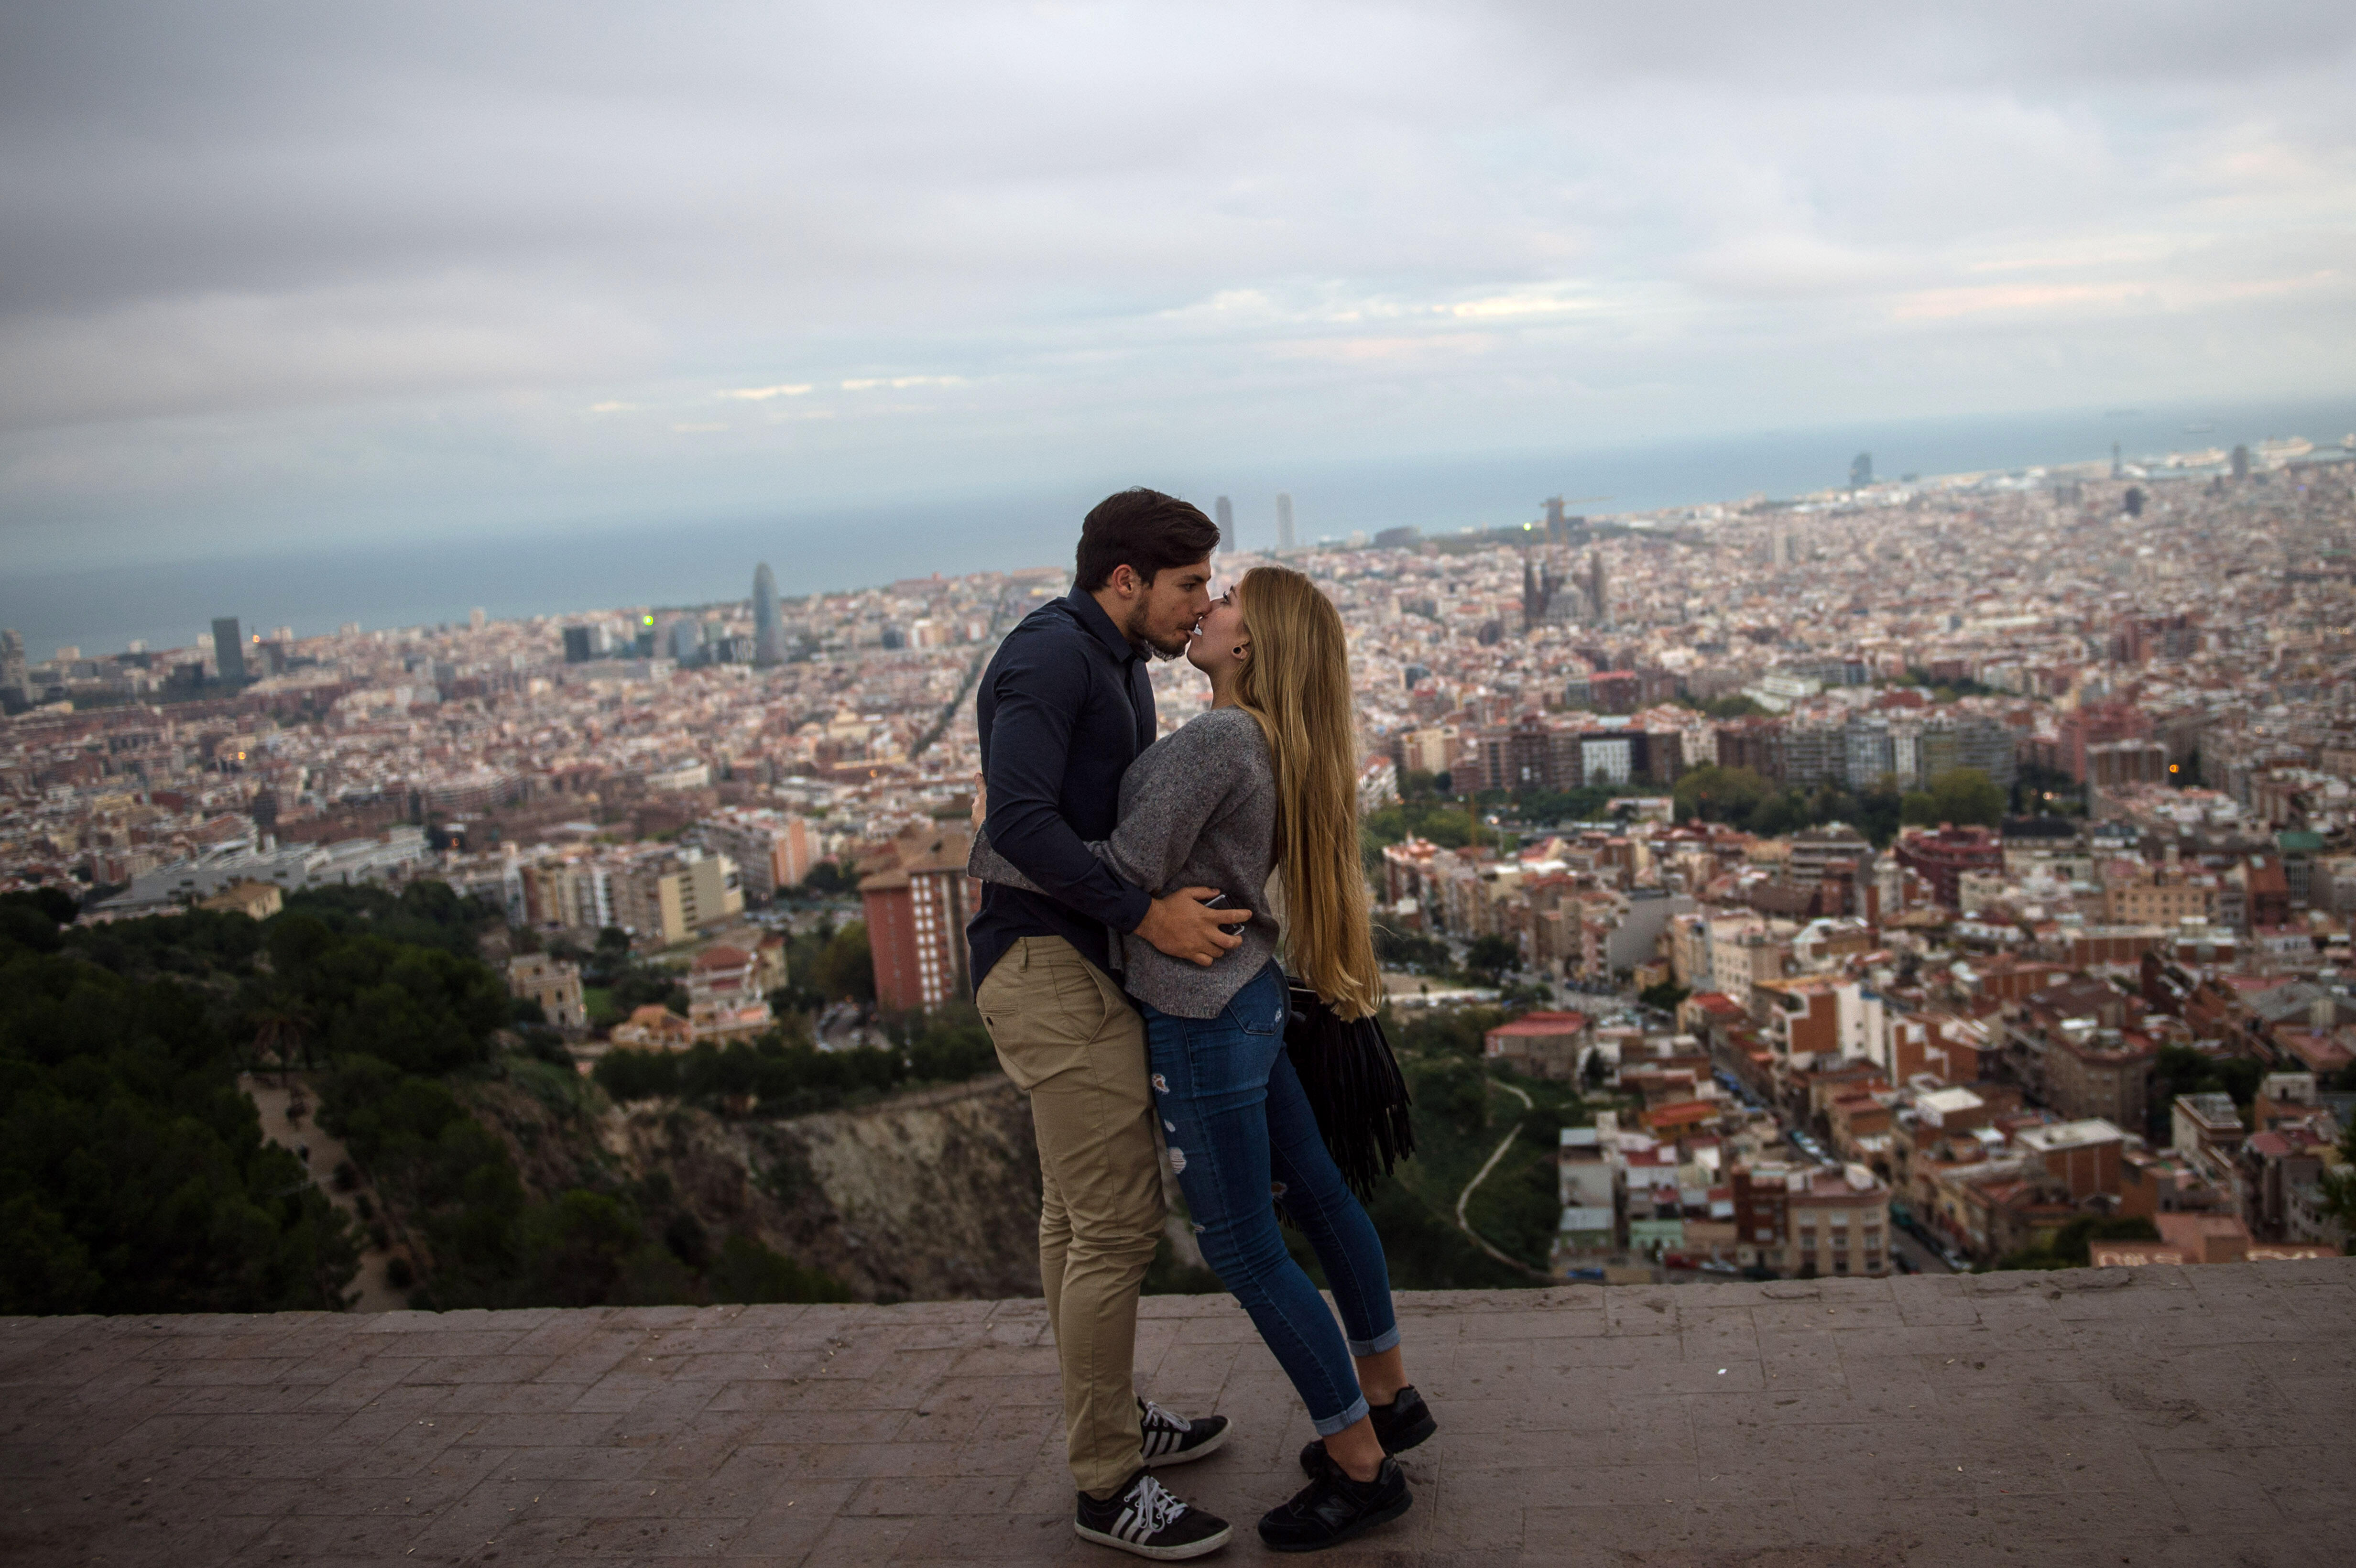 Spain Daily Life - Tourism